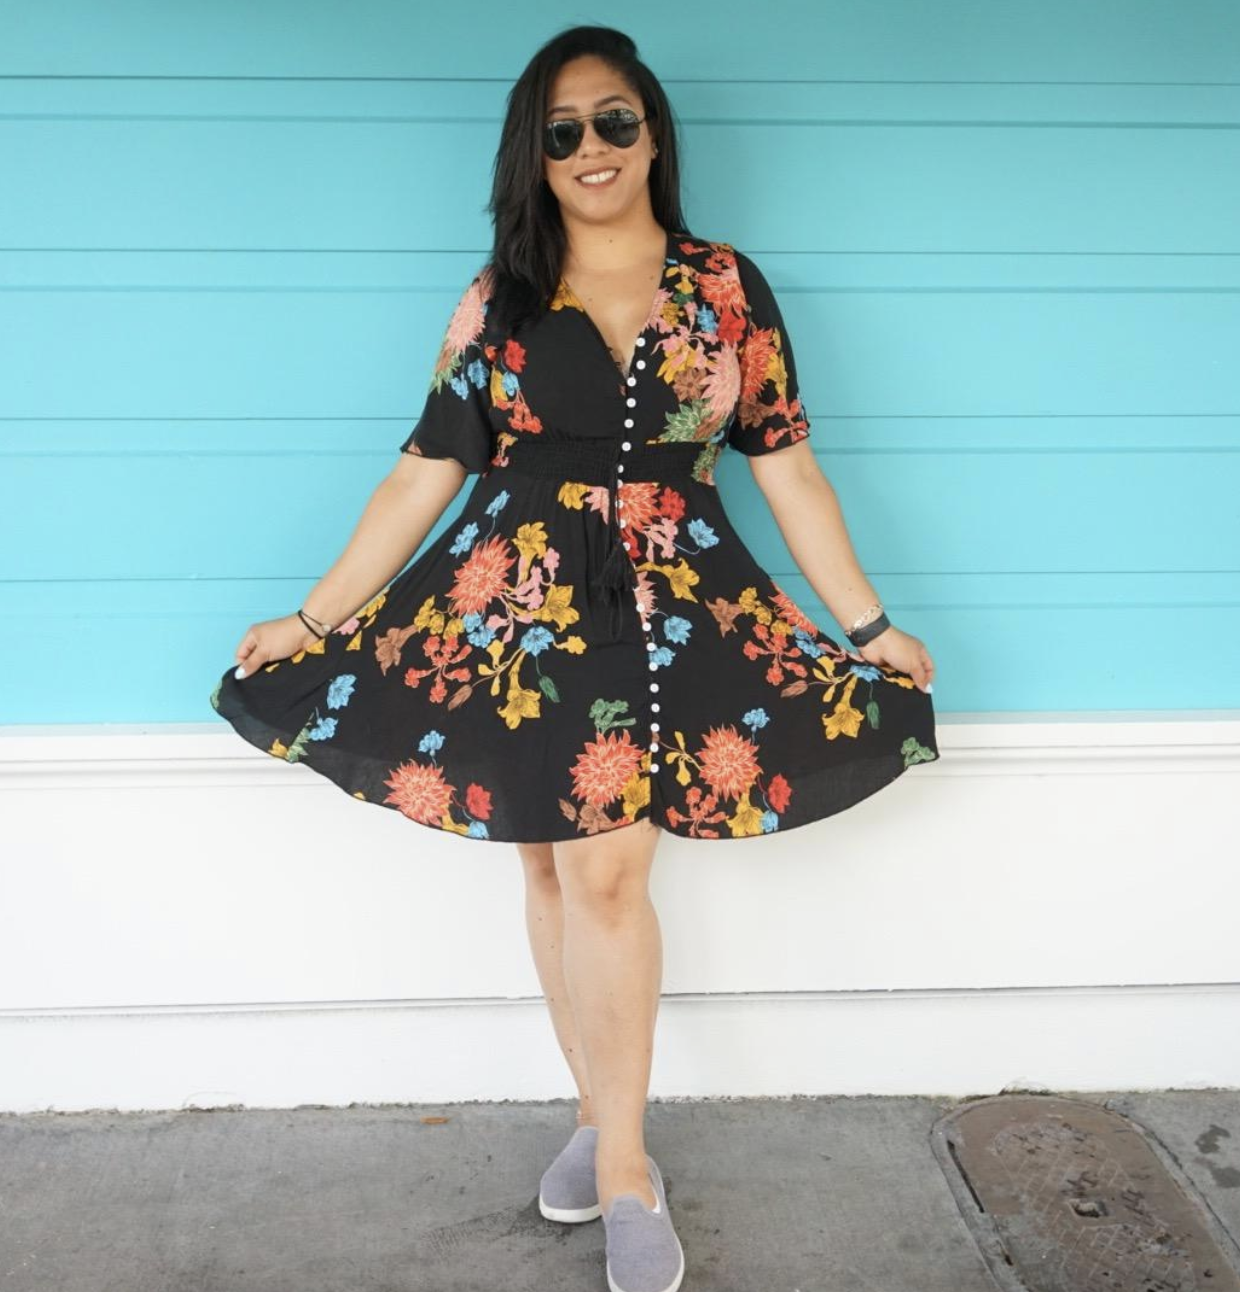 reviewer wearing black and floral V-neck mini dress